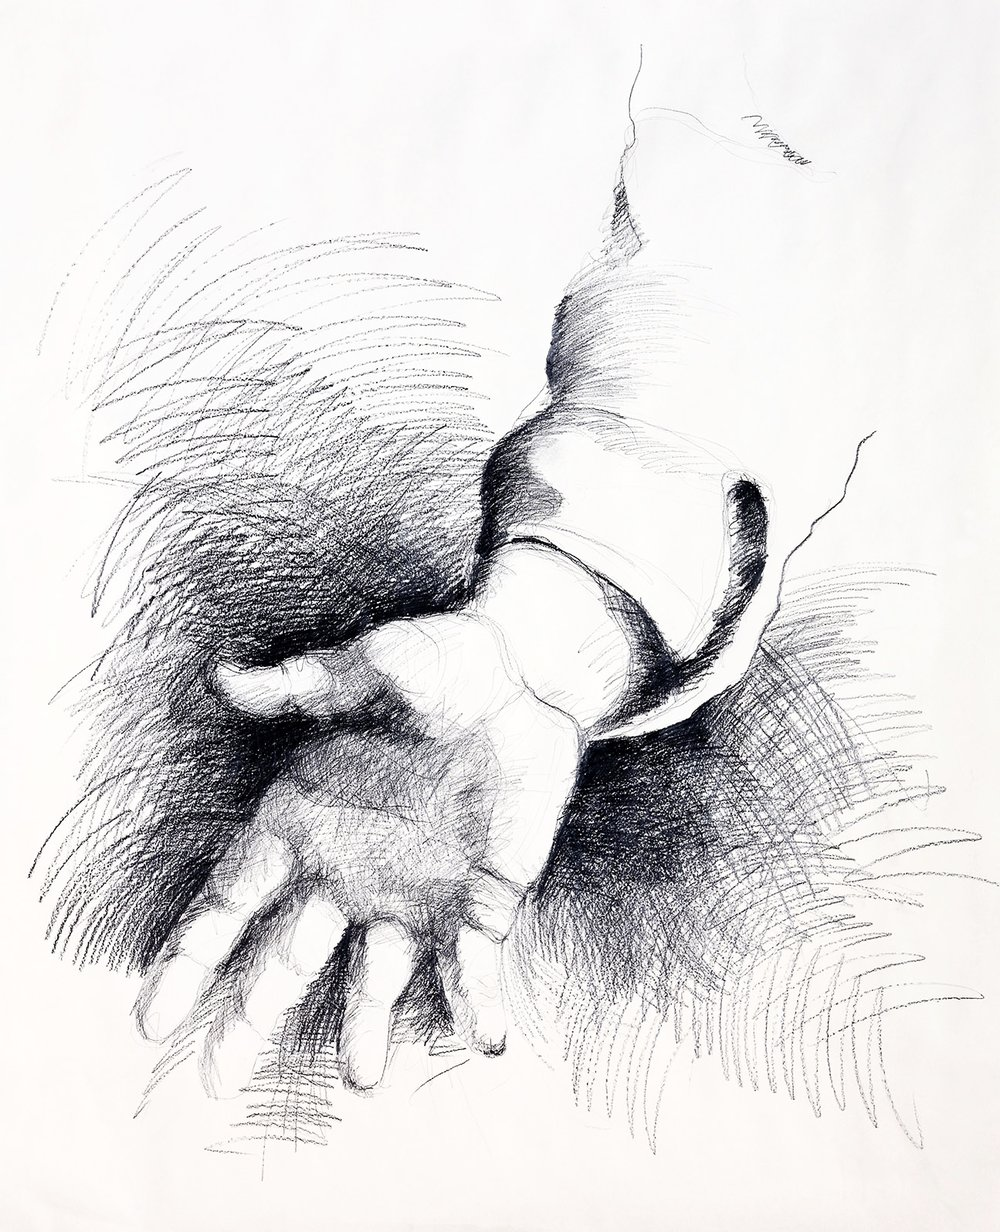 Le Mani di Caravaggio  The hands of Caravaggio  Ink drawings of hands found within the paintings of Caravaggio. The conceit is that they are the preliminary drawings for the paintings which in fact were never done.